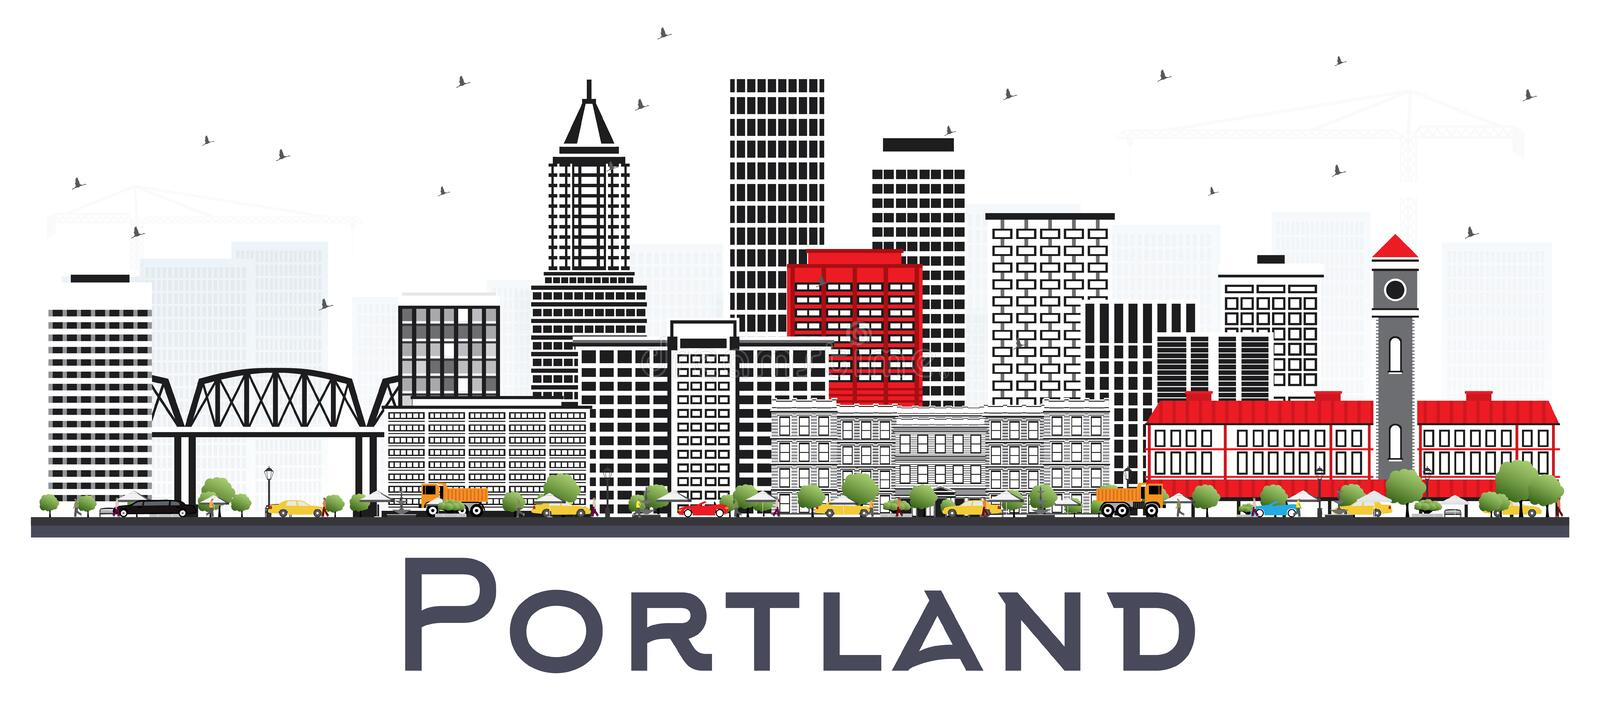 Portland Oregon City Skyline with Gray Buildings Isolated on White. Vector Illustration. Business Travel and Tourism Concept with Modern Architecture. Portland royalty free illustration